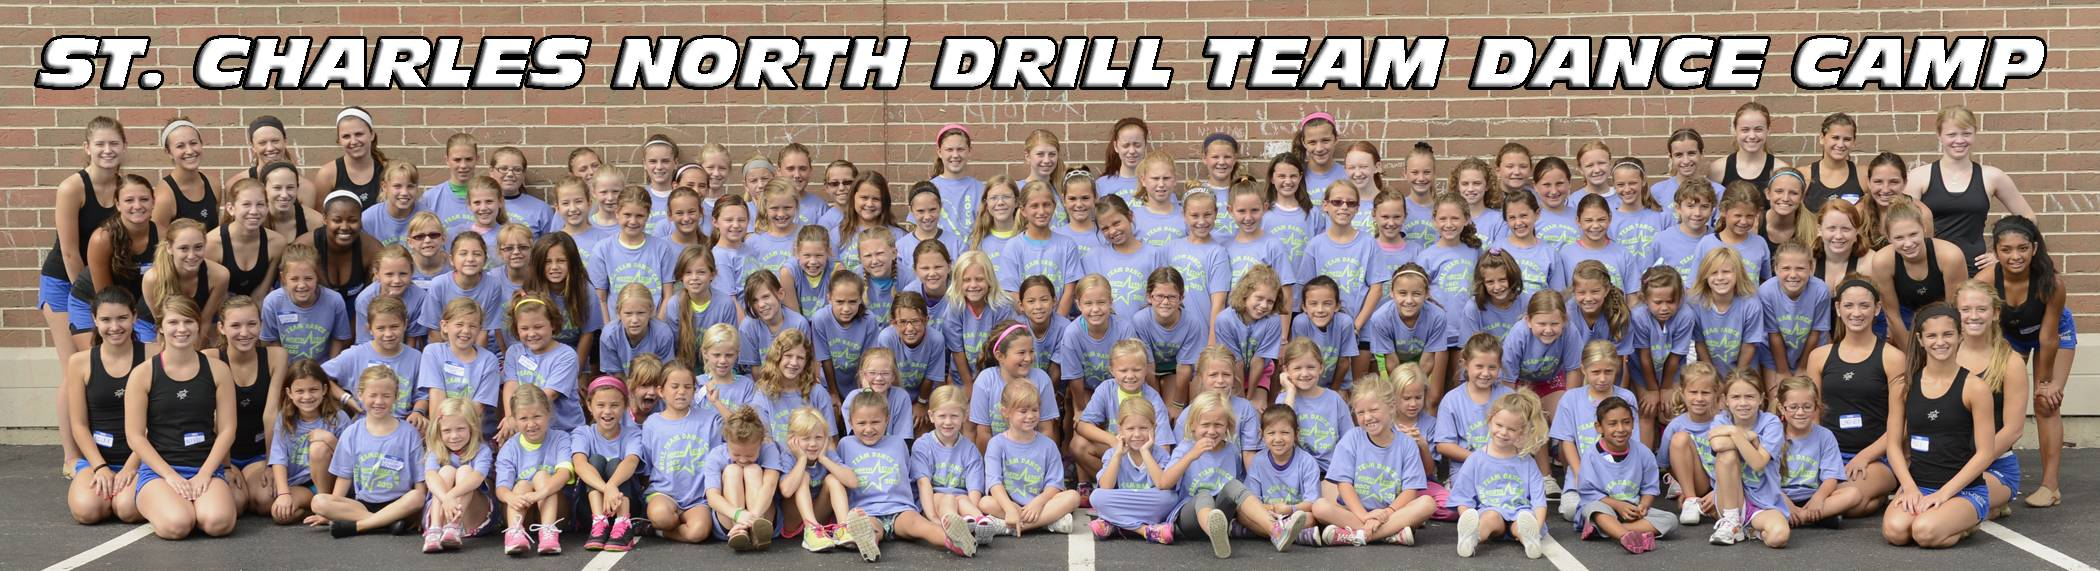 North Star Drill Team members with the campers.